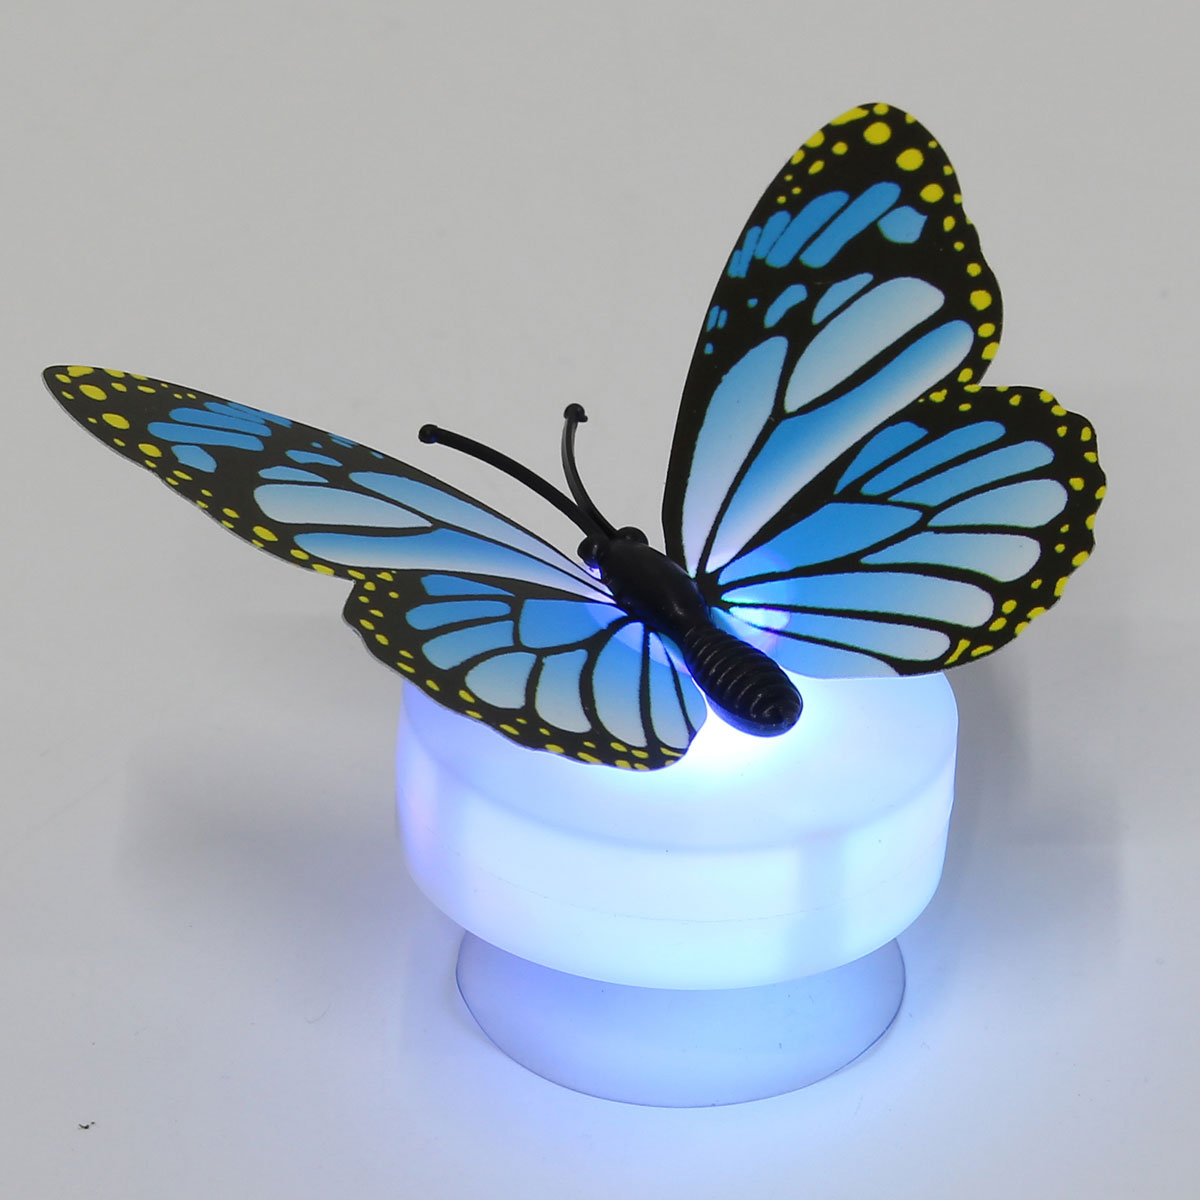 Jiguoor 7 Color Changing Beautiful Cute Butterfly LED Night Light Baby Kids Room Wall Light Lamp Lamparas Luminarias Lampe